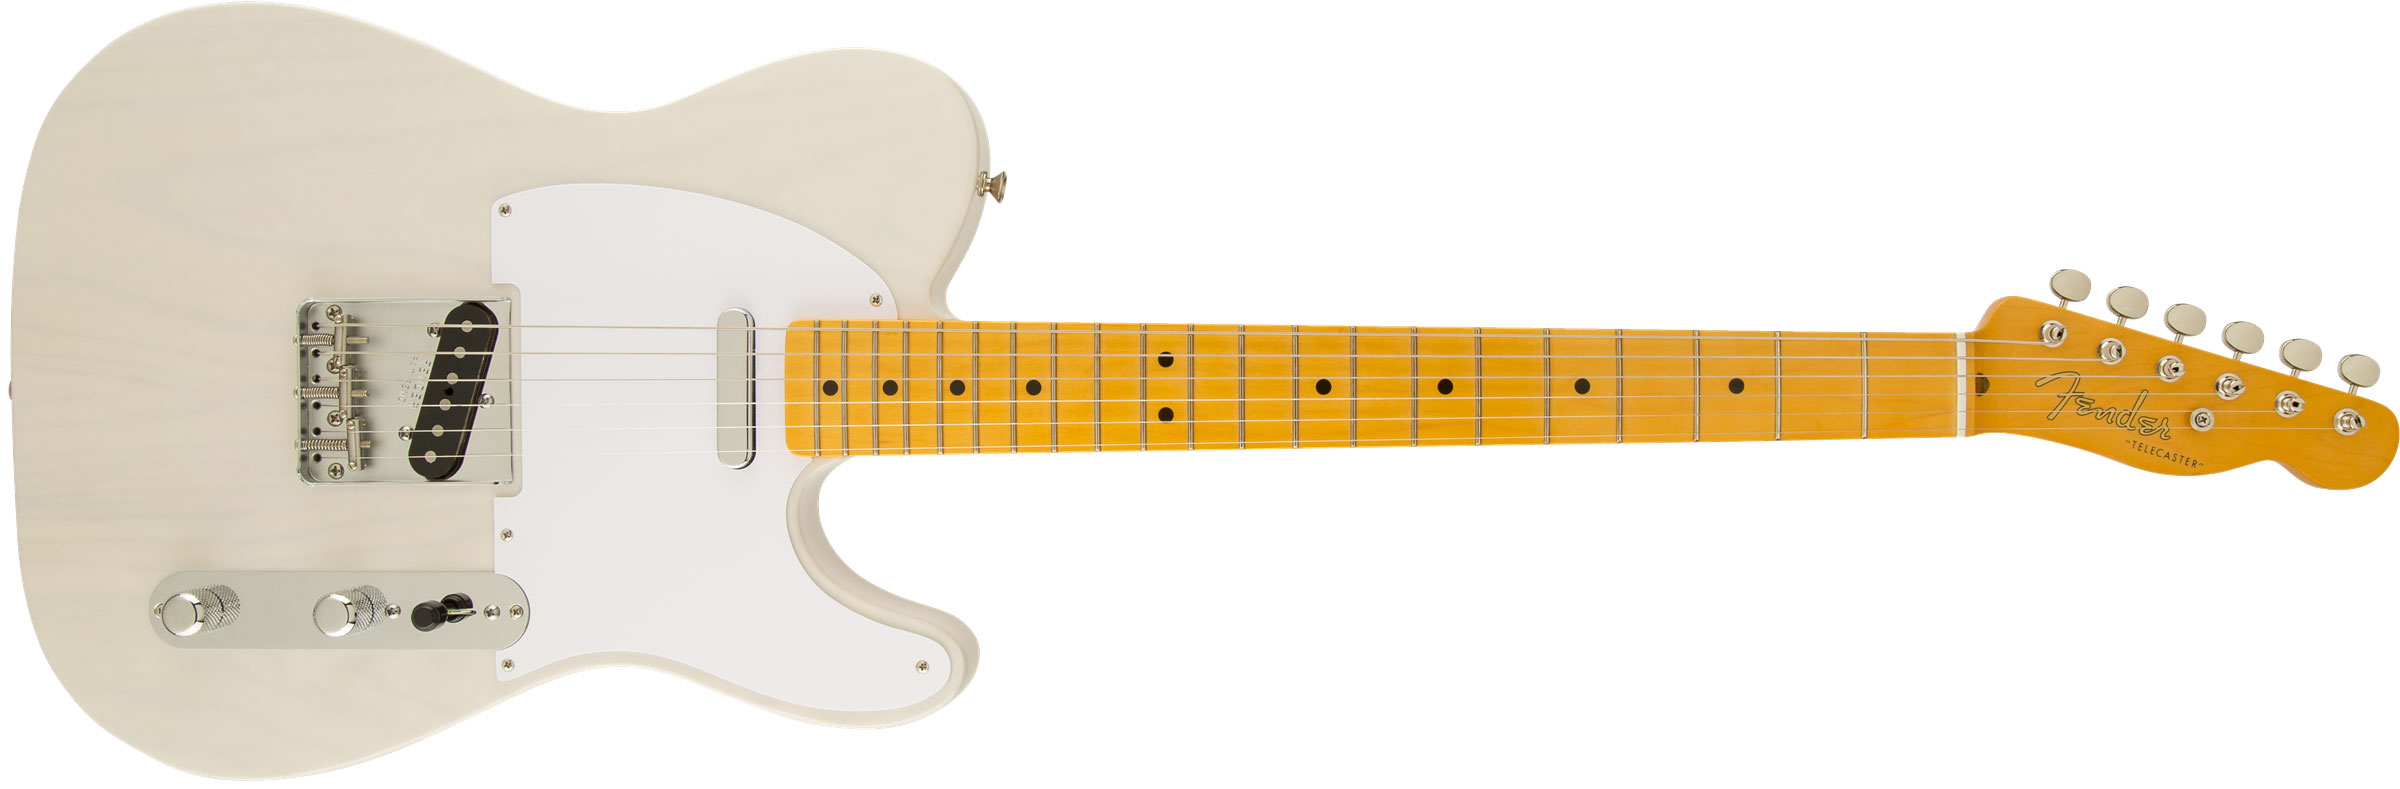 GUITARRA FENDER 50S TELECASTER LACQUER MN 014-0063-701 WHITE BLONDE